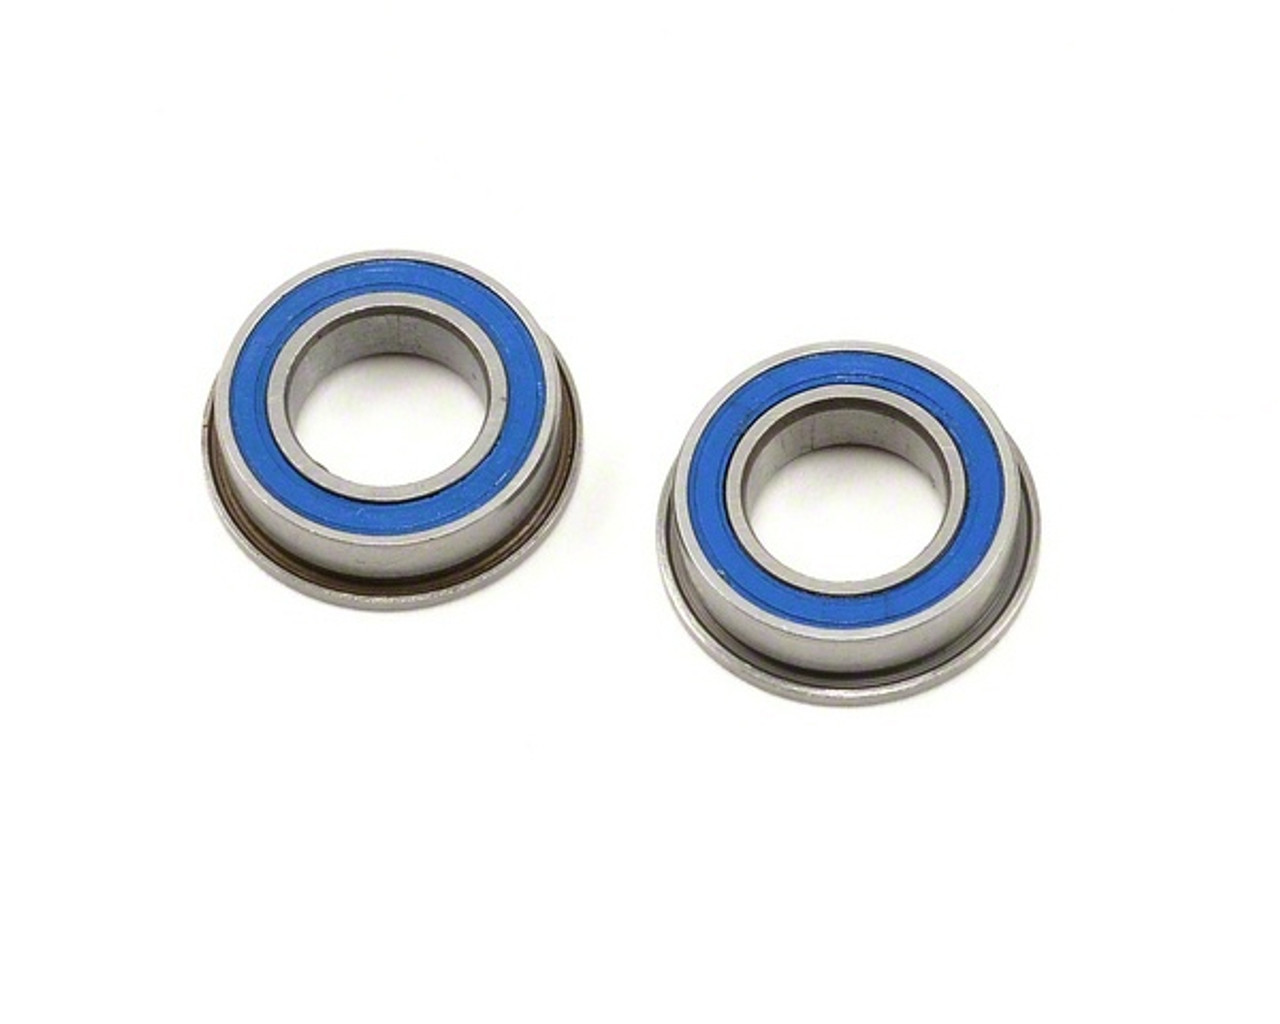 Bearings Metric Series 15x24x5 MM Flanged Rubber Sealed (2 Pack) (MF6802 2RS)